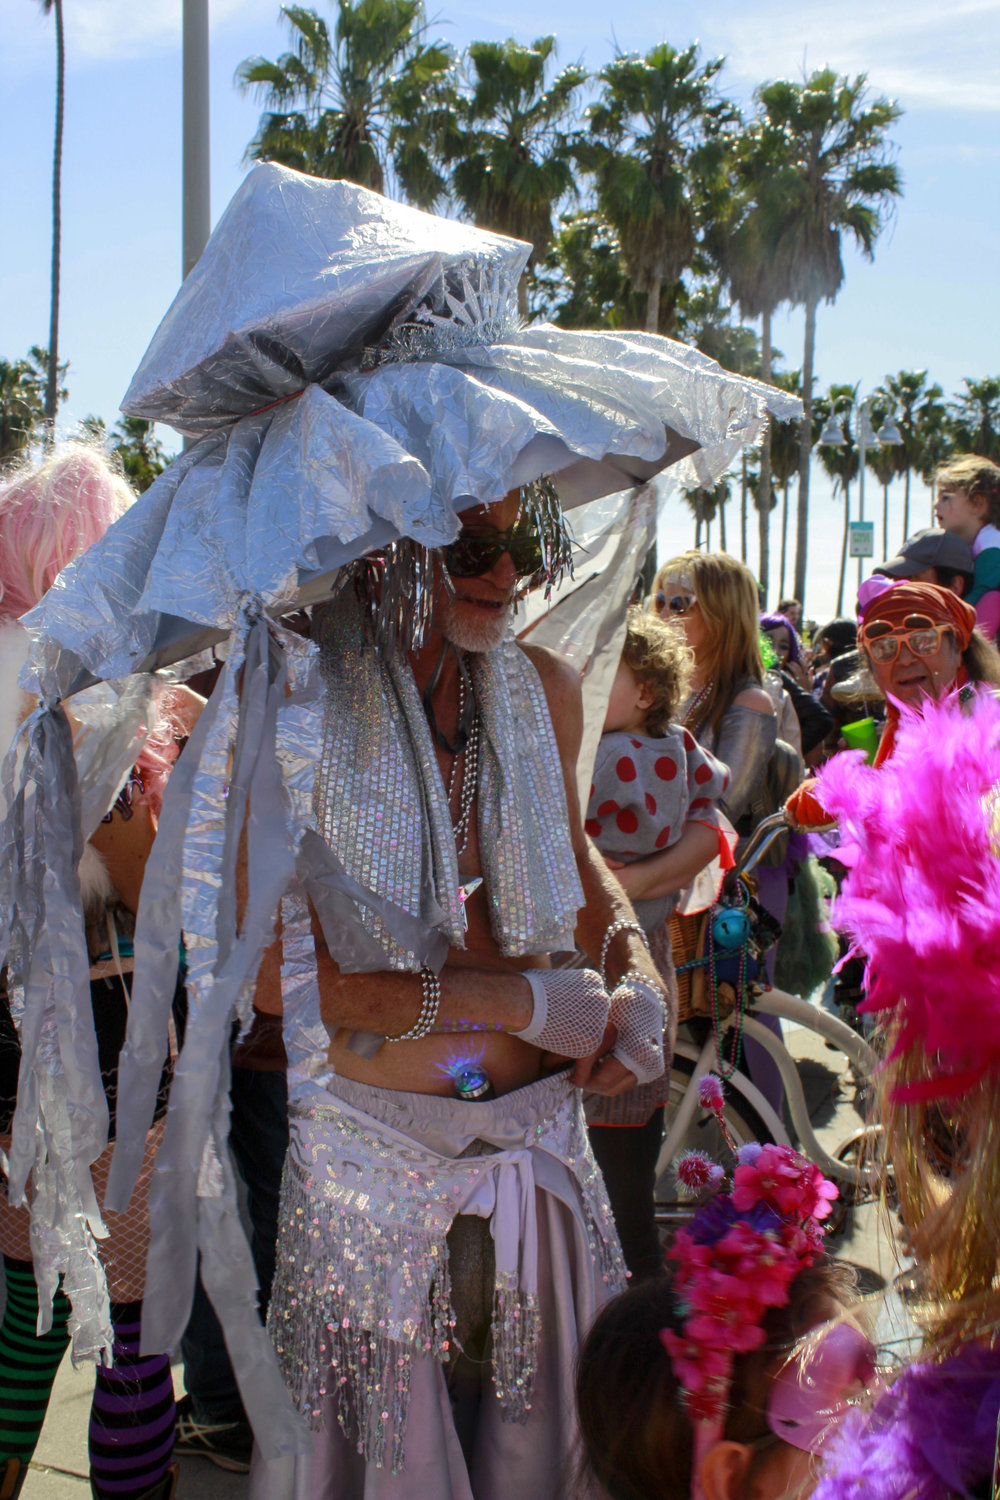 Mark Snyder watching the crowd rush around him at the end of the Venice Beach Mardi Gras parade on Feb 23, 2019 in Los Angeles, California. Photo by Danica Creahan.